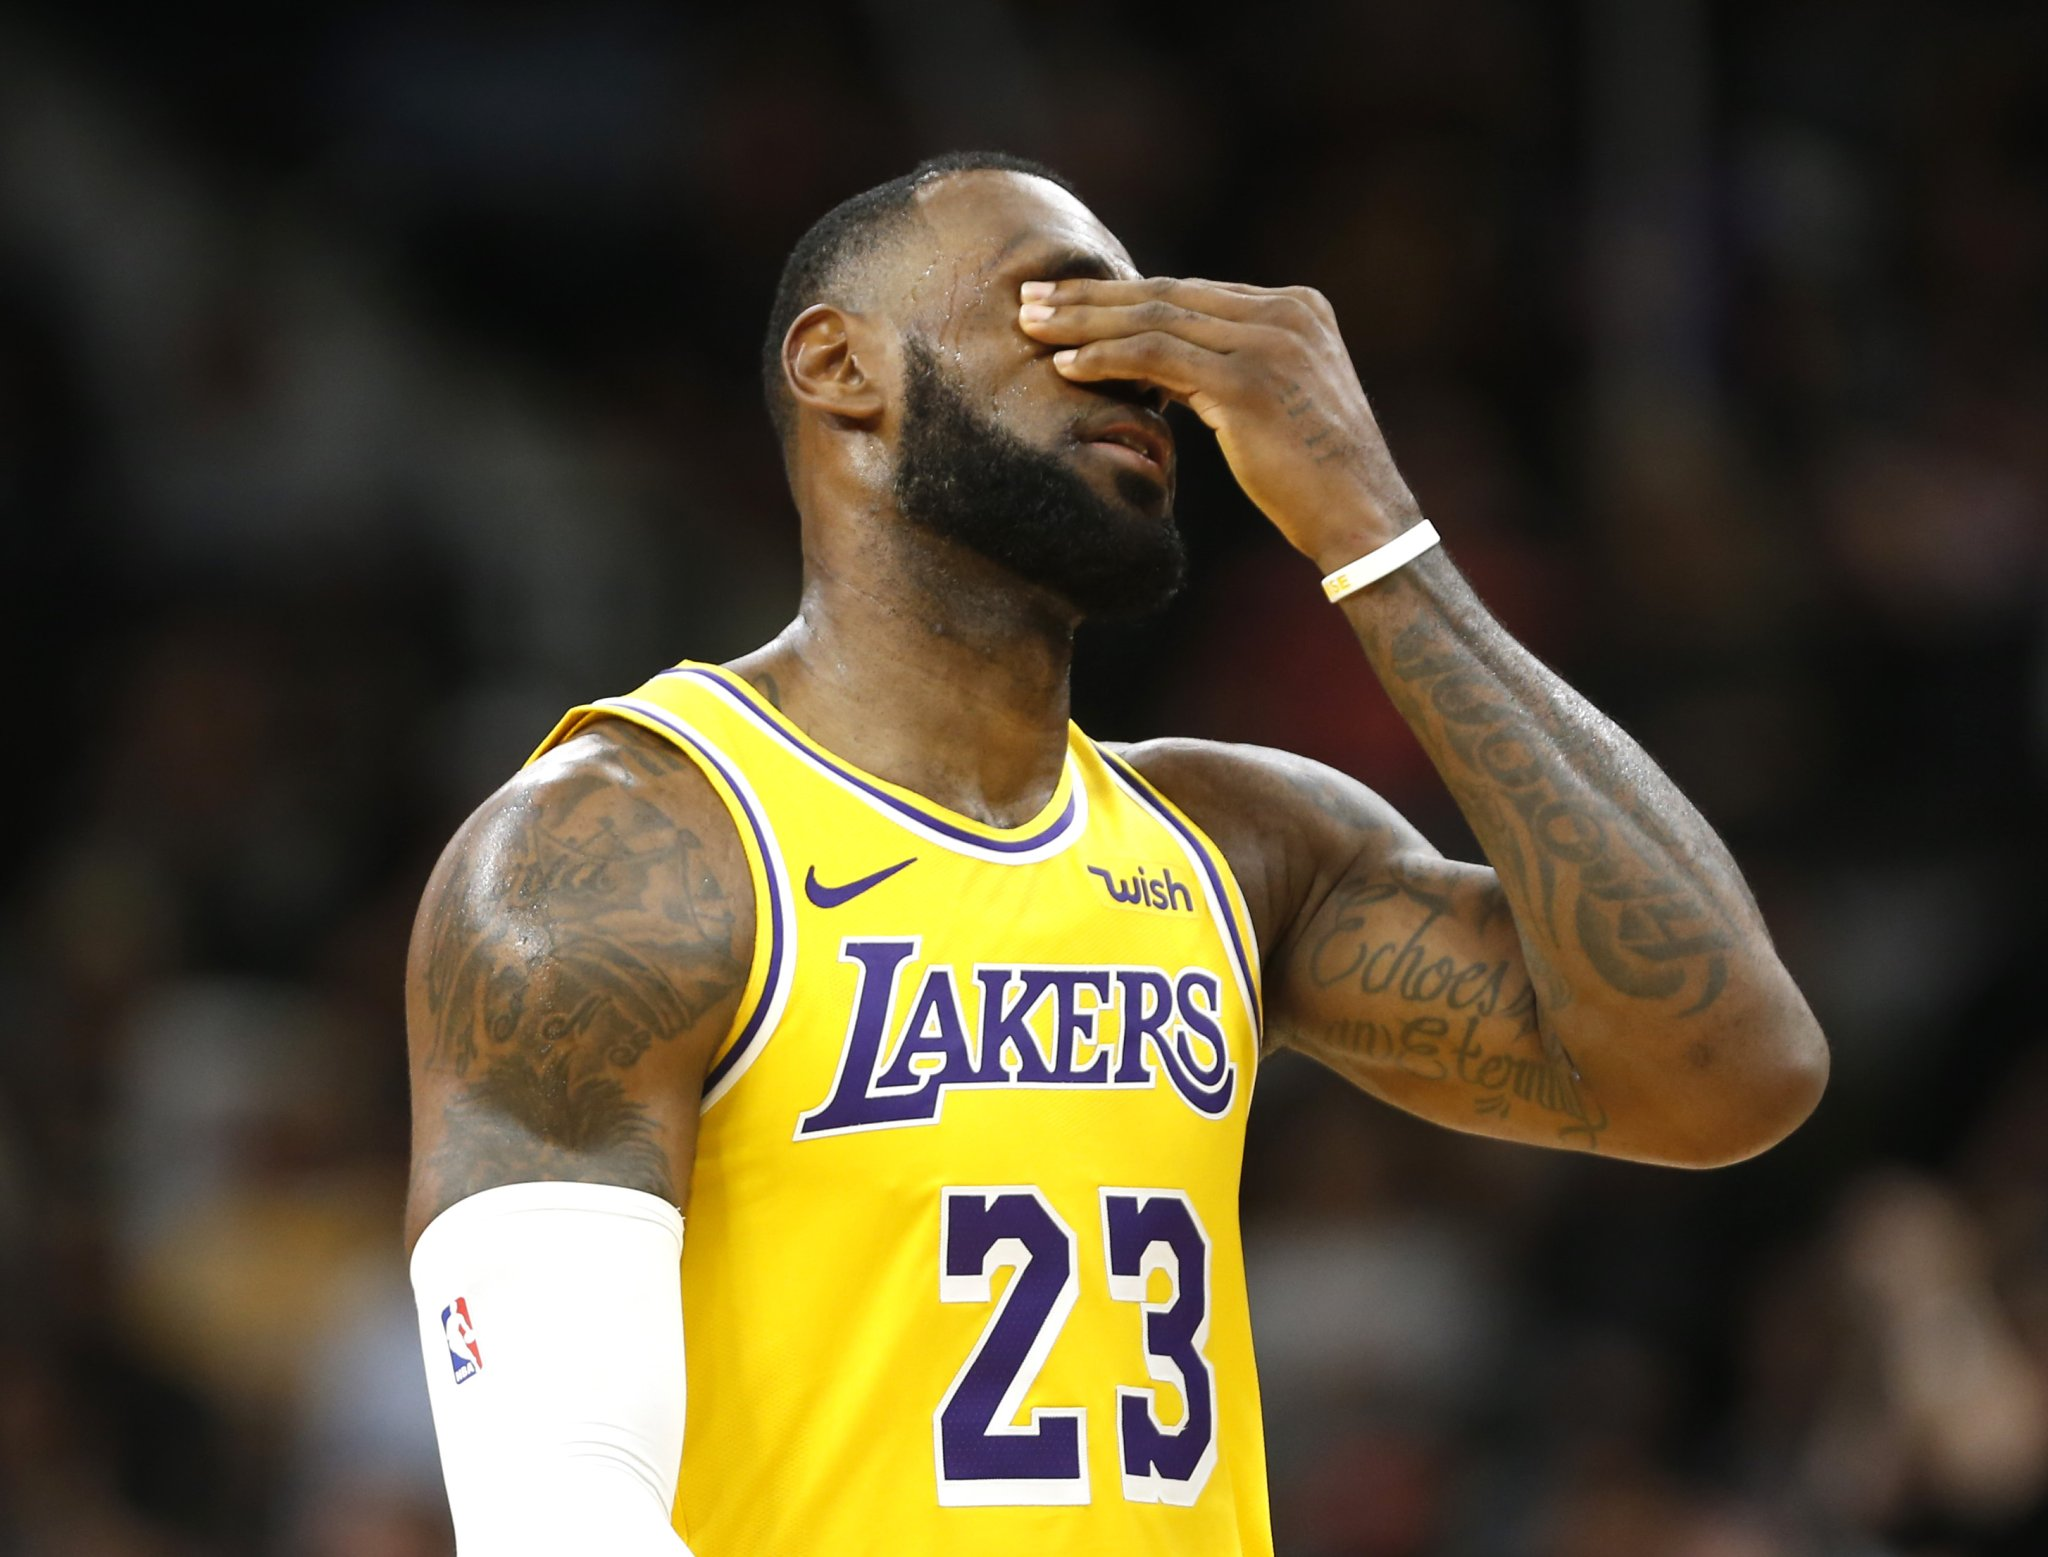 Map shows LeBron James is the most hated NBA player in many U.S. states - cover